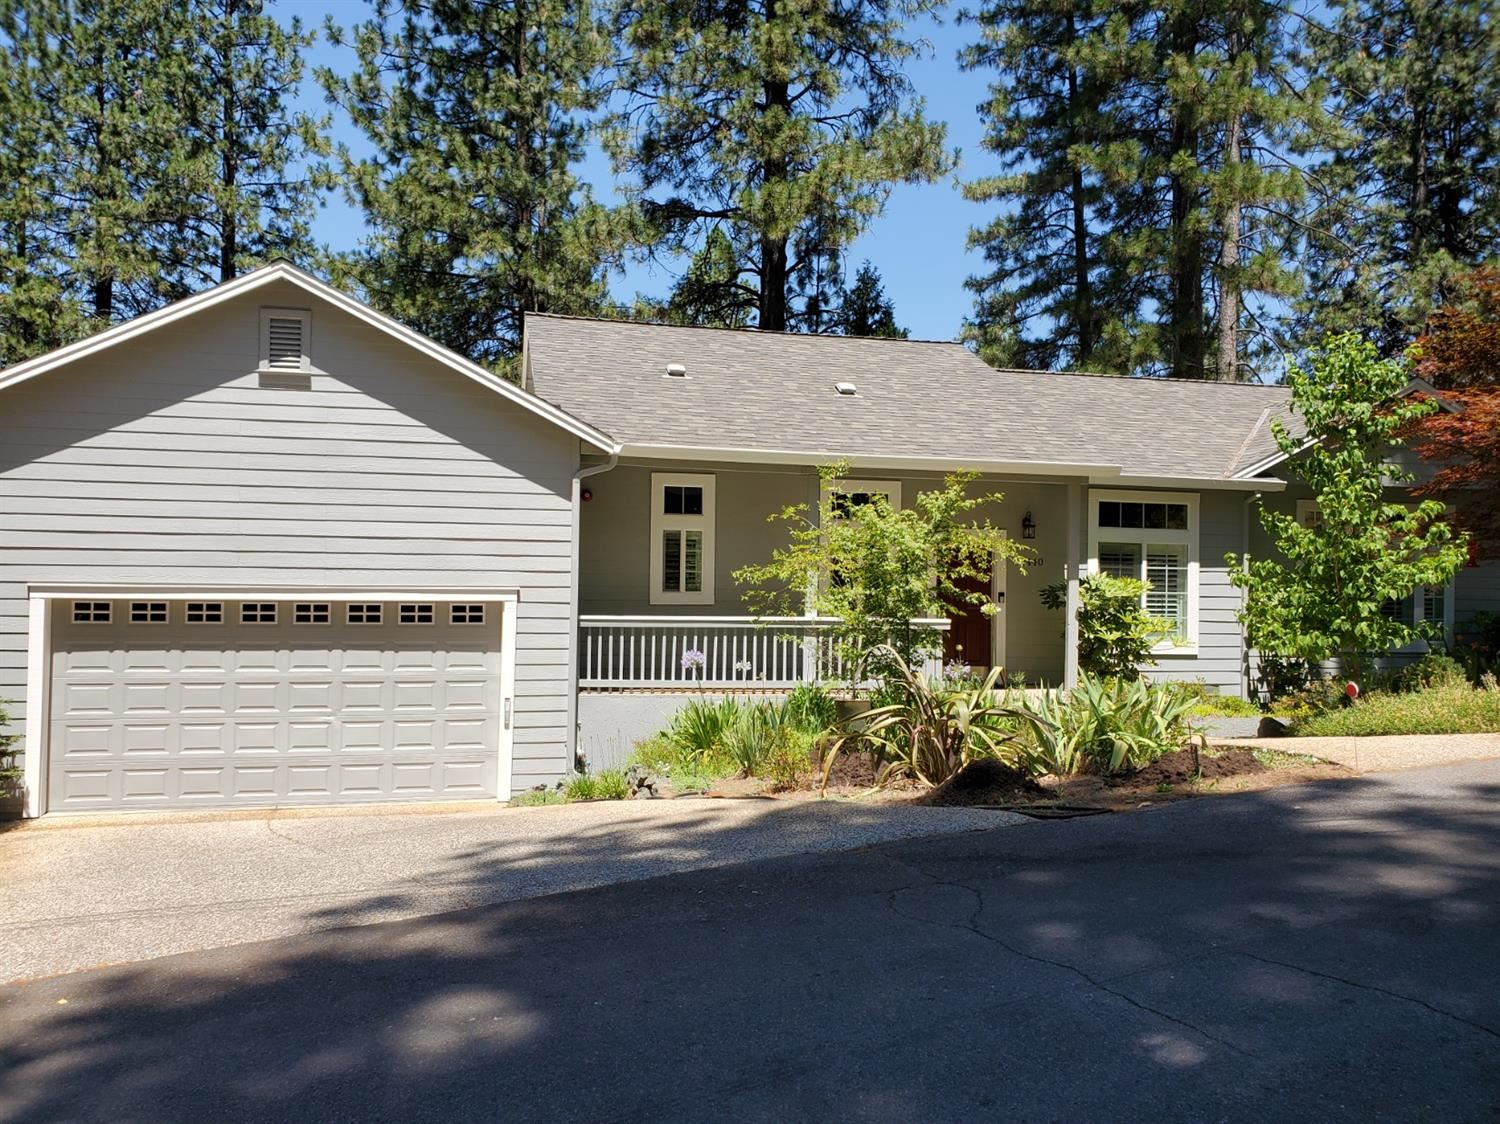 10440 Hanging Wall Drive, Grass Valley, CA 95945 - MLS#: 221079718